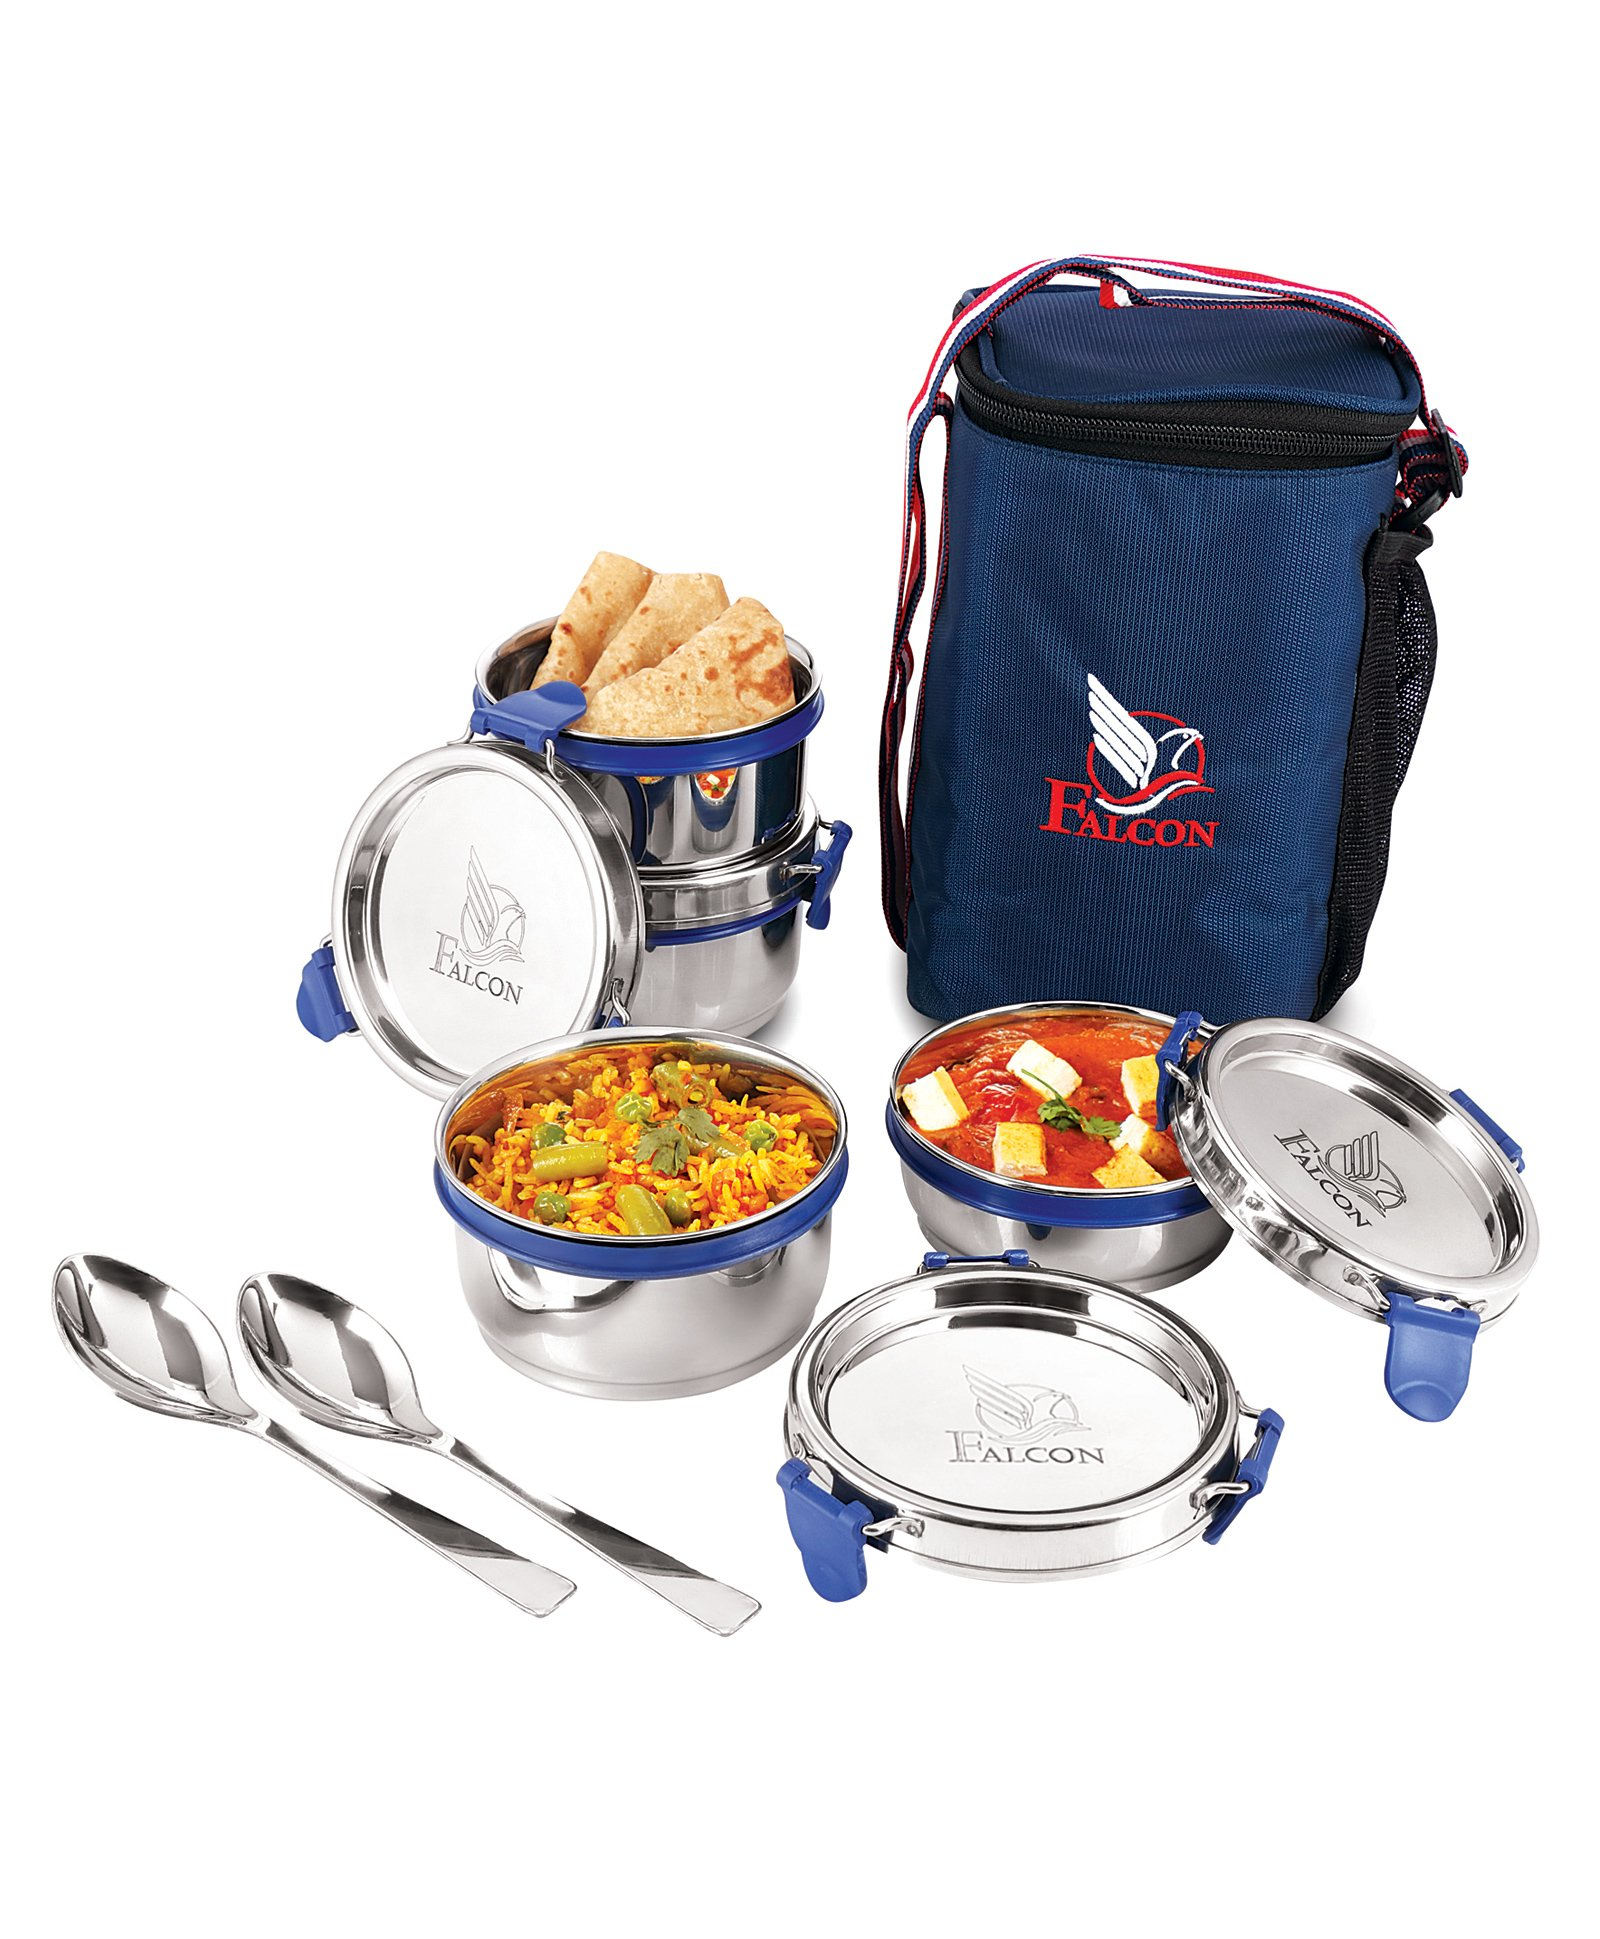 Falcon Eco Nxt Stainless Steel Lunch Box Set of 7 Navy Online in India, Buy  at Best Price from Firstcry com - 2505075